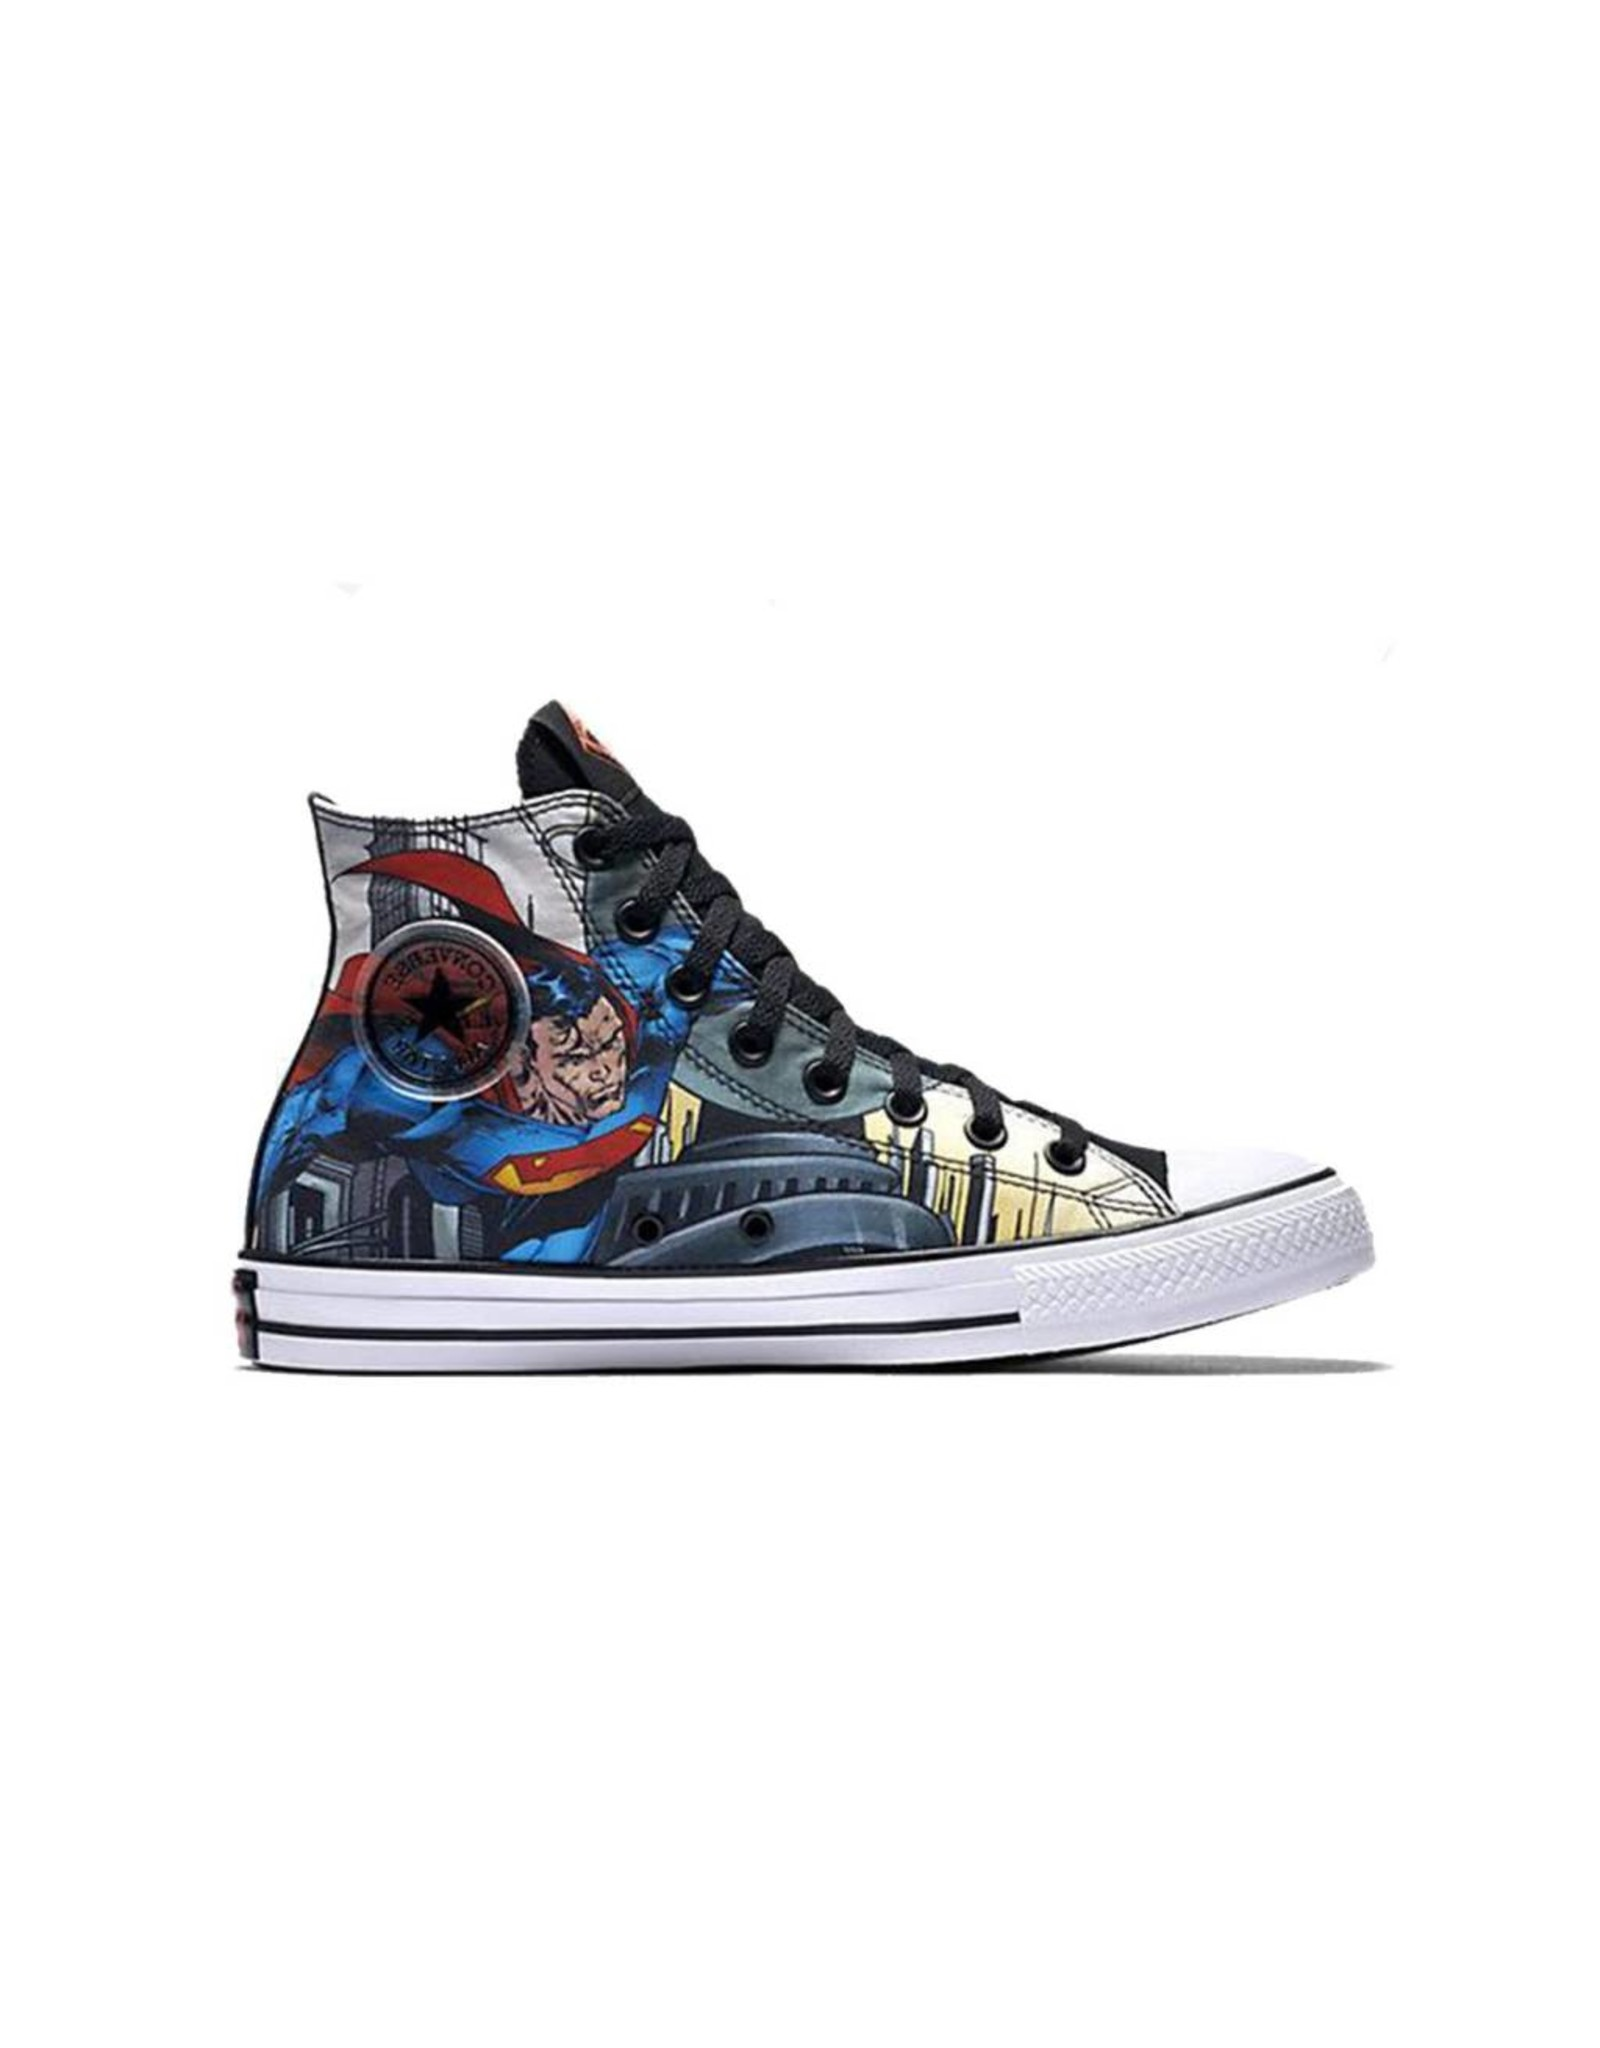 CONVERSE CHUCK TAYLOR HI BLACK/BLUE/WHITE DC COMICS SUPERMAN C16SUP-154875C